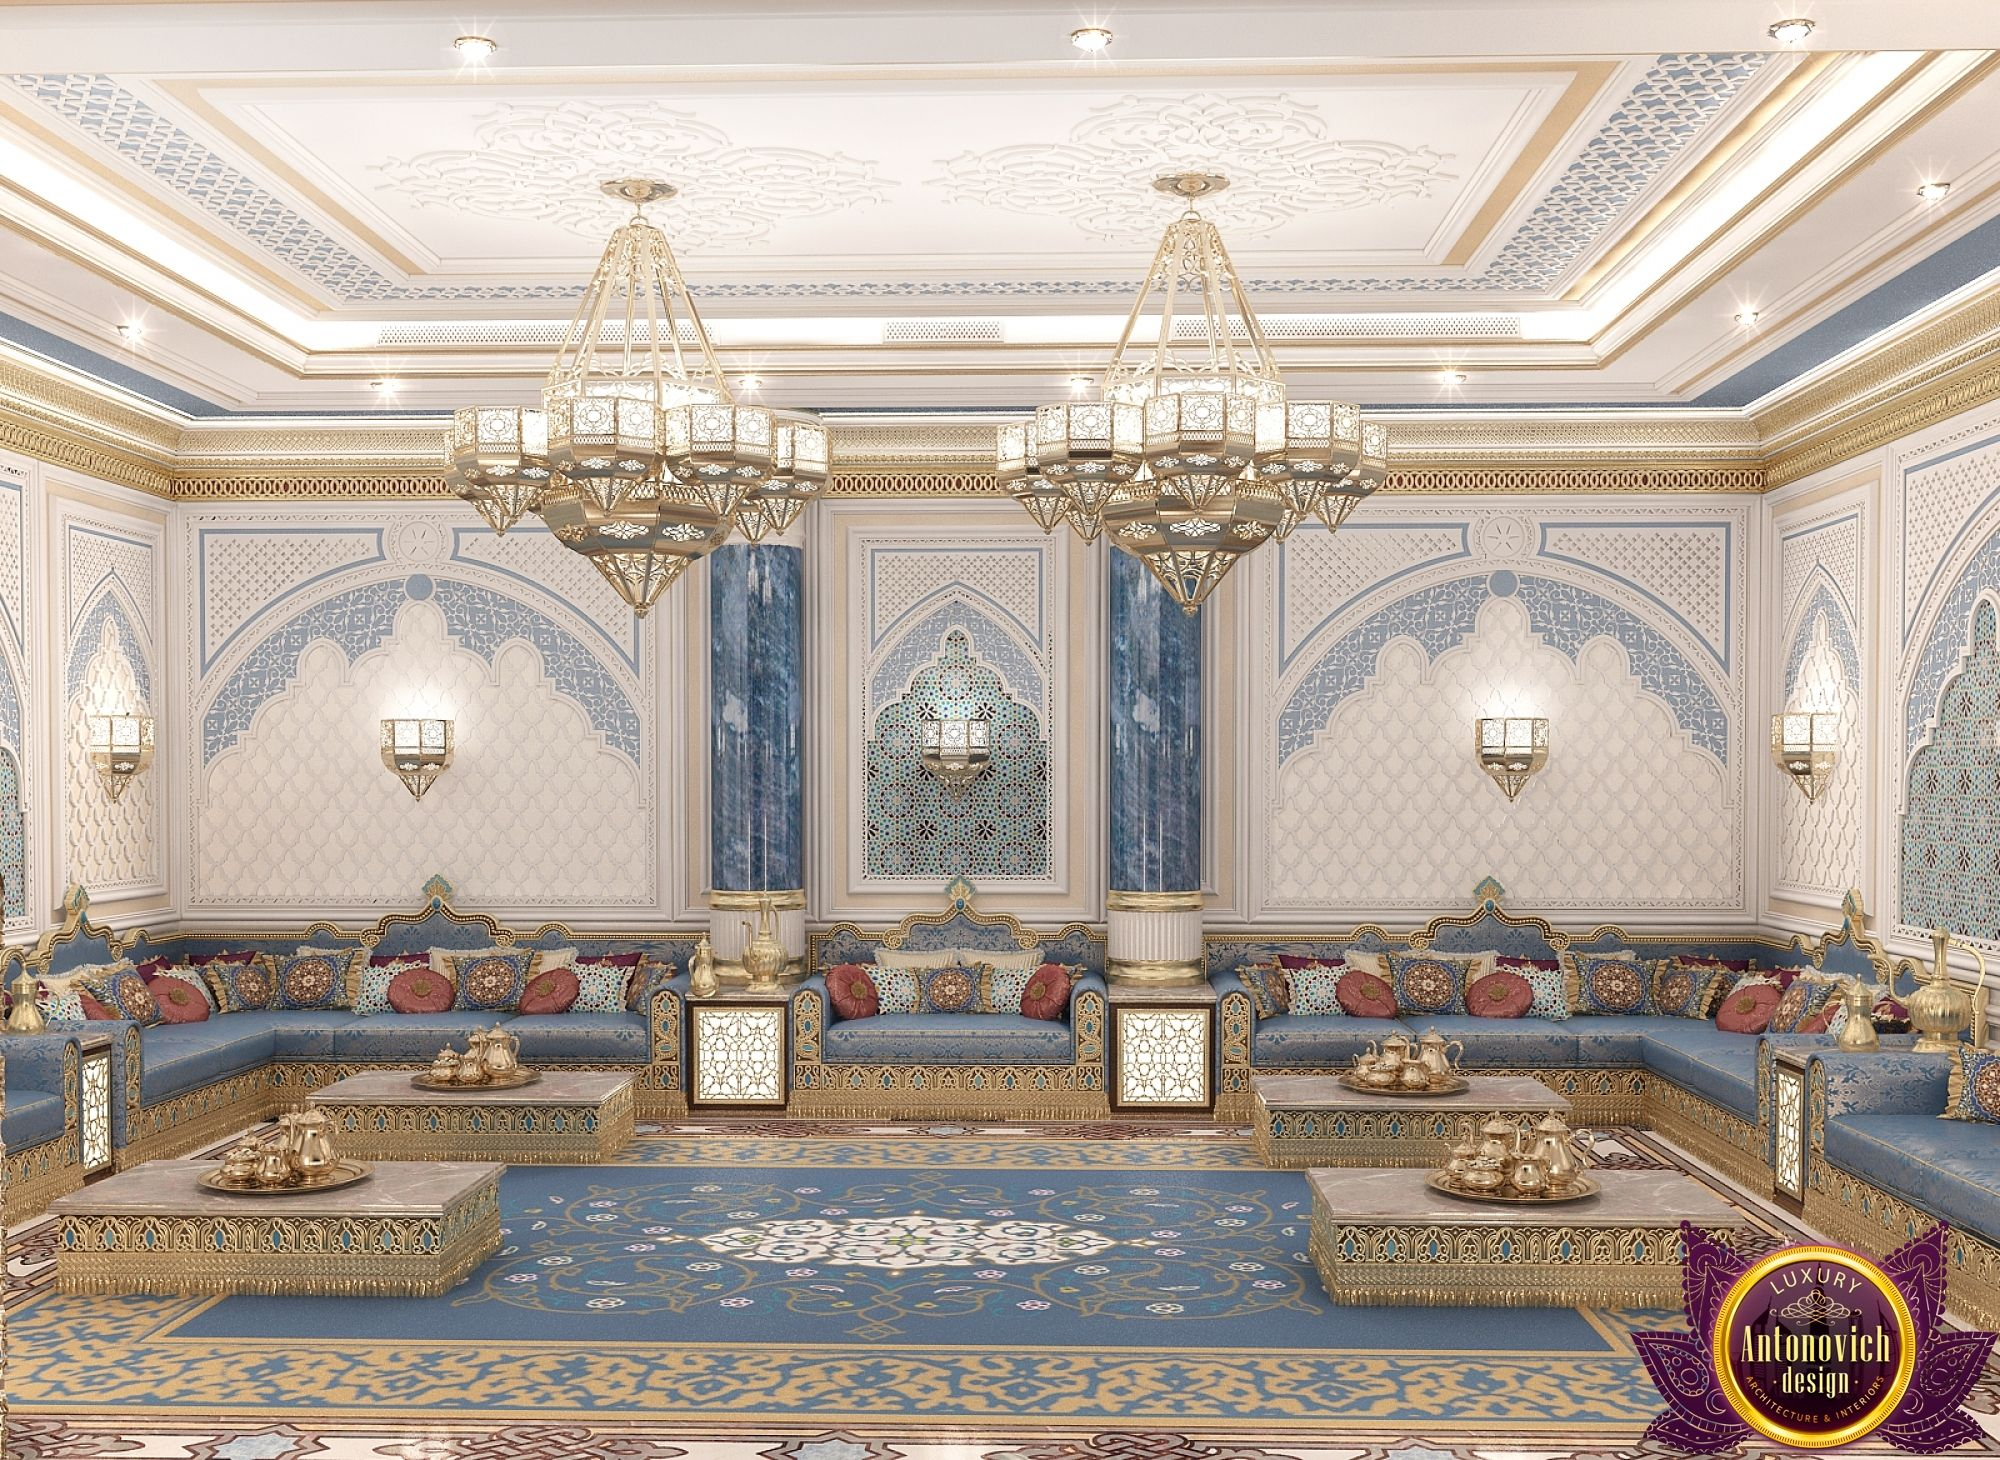 Majlis Interior Design In Dubai Luxury Arabic Photo 2